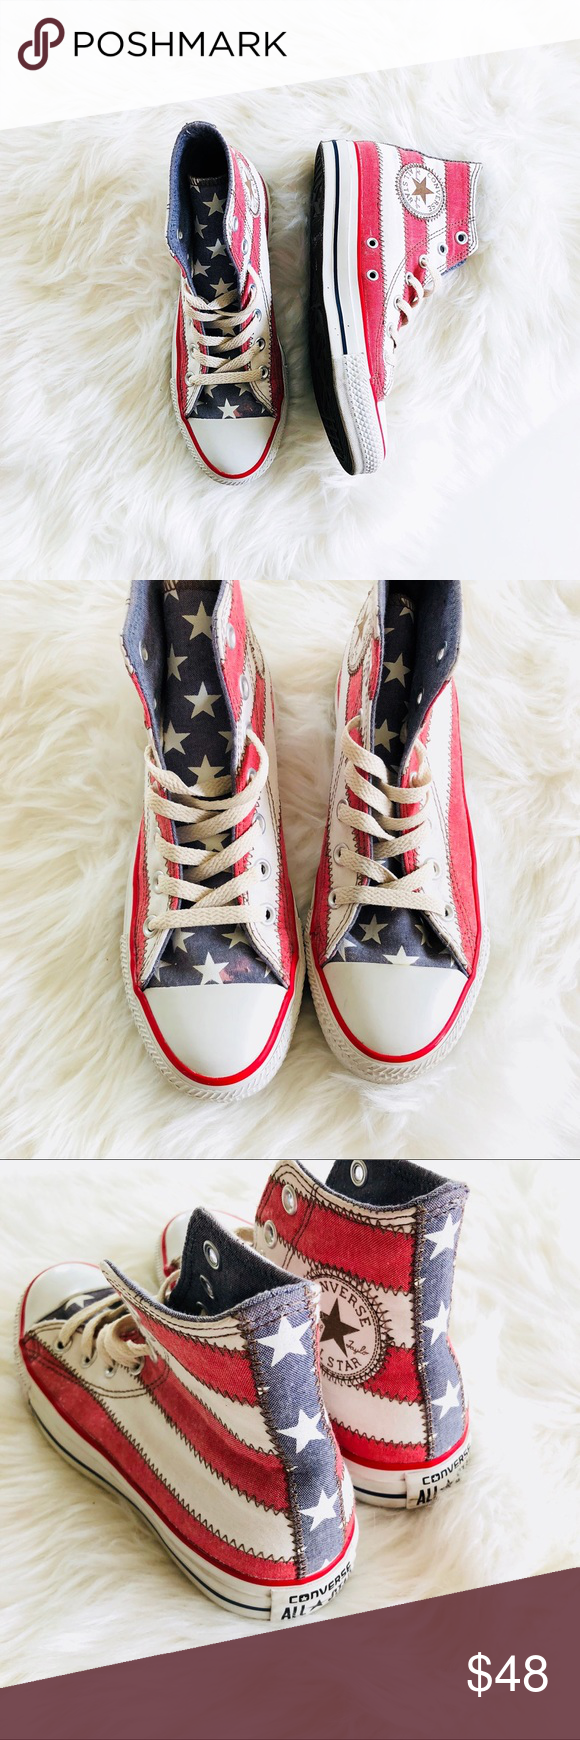 Converse Chuck Taylor Americana High Tops Converse Chuck Taylor Americana  High Tops in faded fabric with stitching. Size 7 Worn once 43f524256